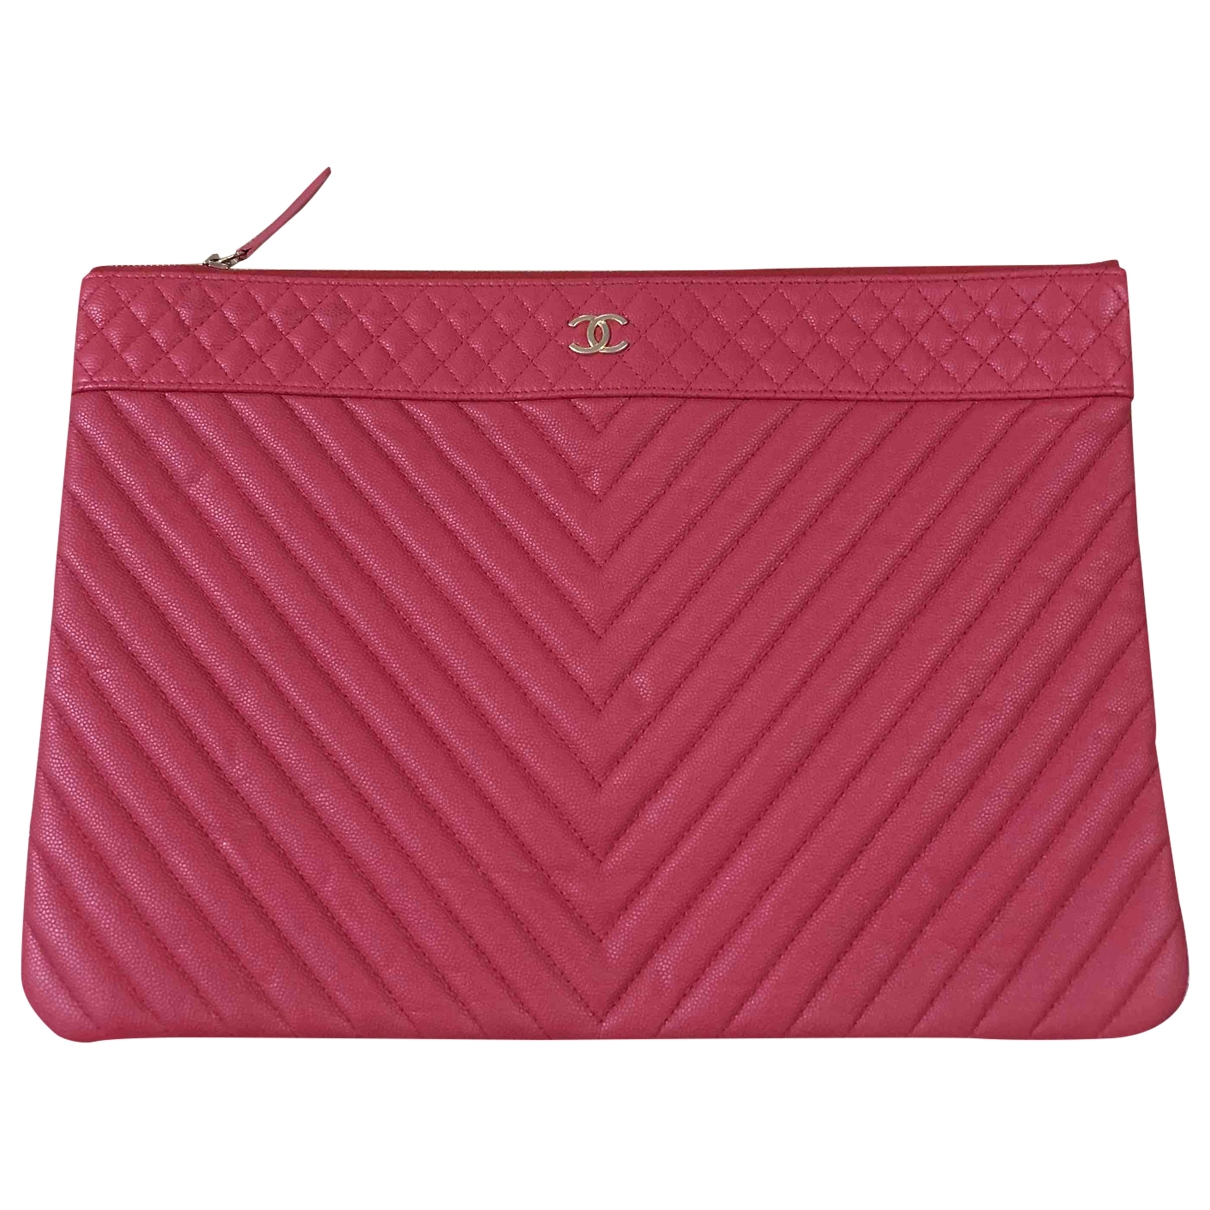 Chanel \N Pink Leather Clutch bag for Women \N